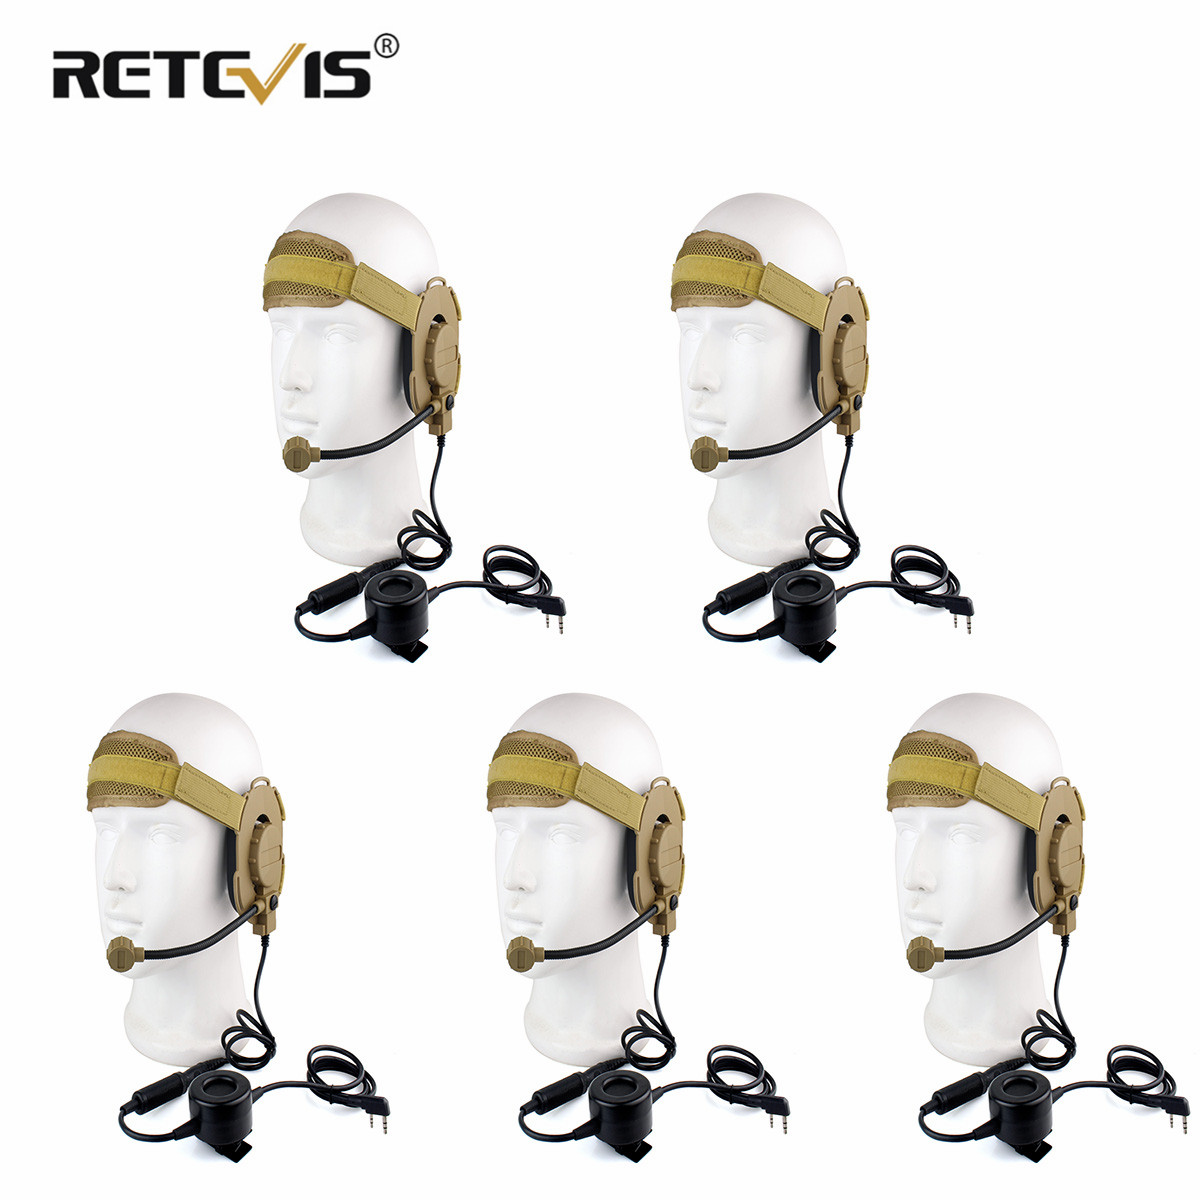 5pcs  HD03 Z Tactical Bowman Elite II Headset With Waterproof PTT Right/Left Ear For Kenwood 2 Pin Two-way Radios Yellow C2052Y